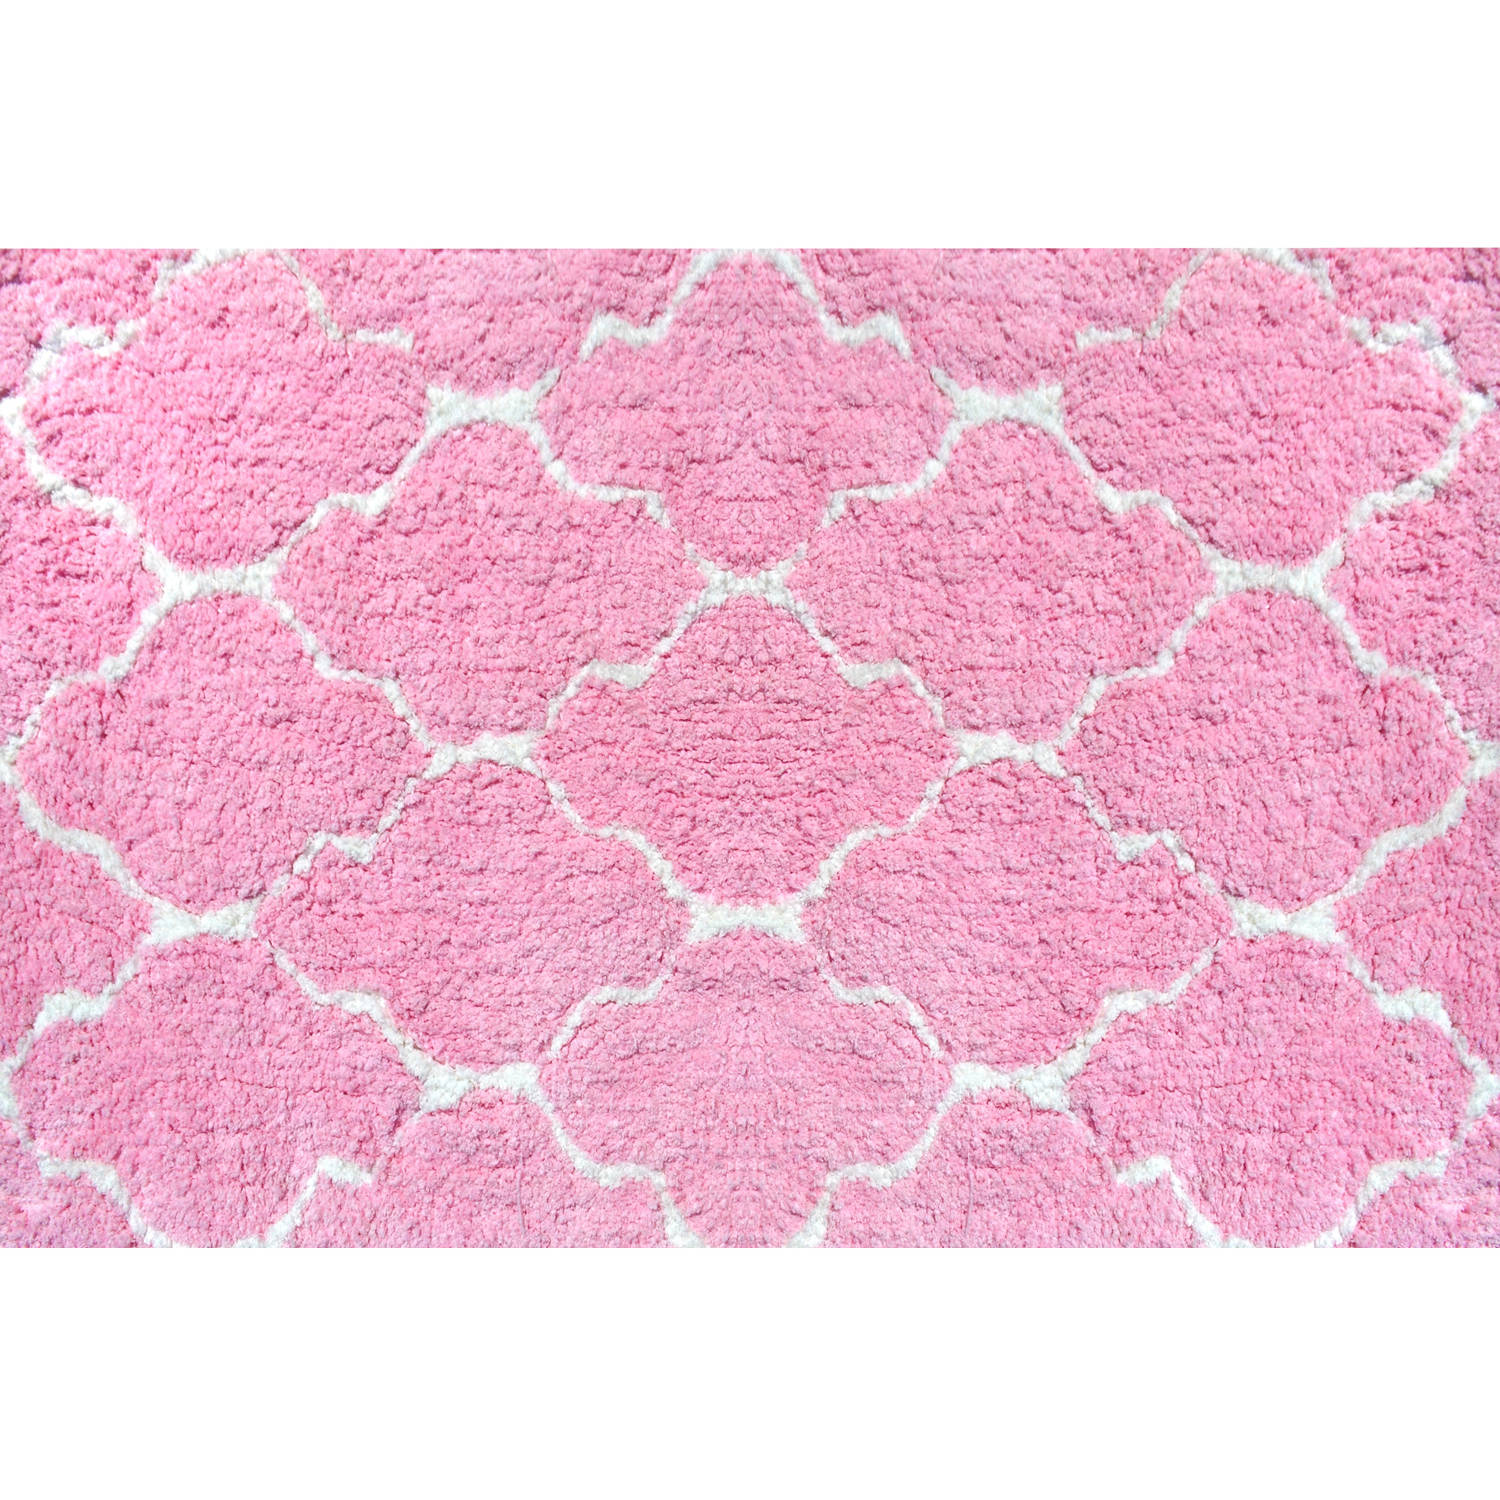 The Rug Market Pink Clouds Size 2.8' x 4.8' Area Rug